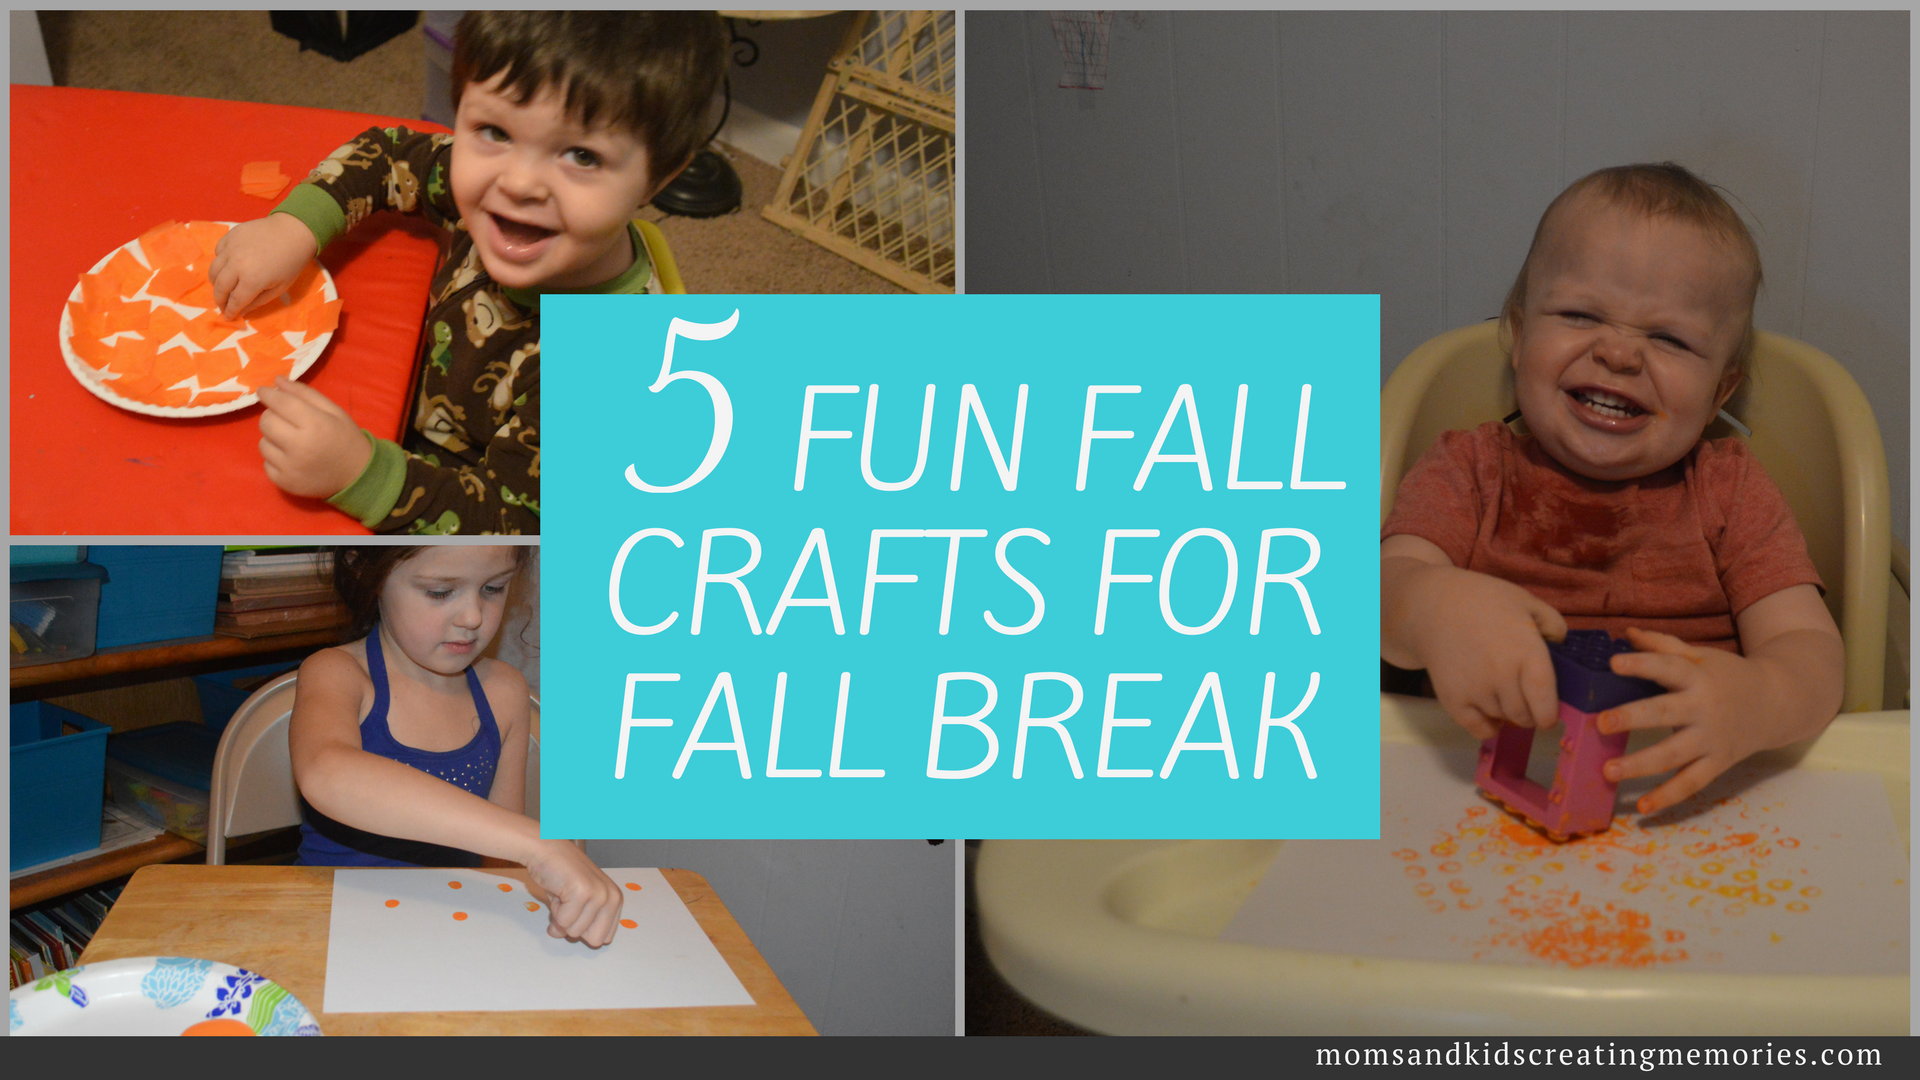 5 Fun Fall Crafts for Fall Break - check out these fun fall crafts that I tested with my kids and they were a hit! Check it out!